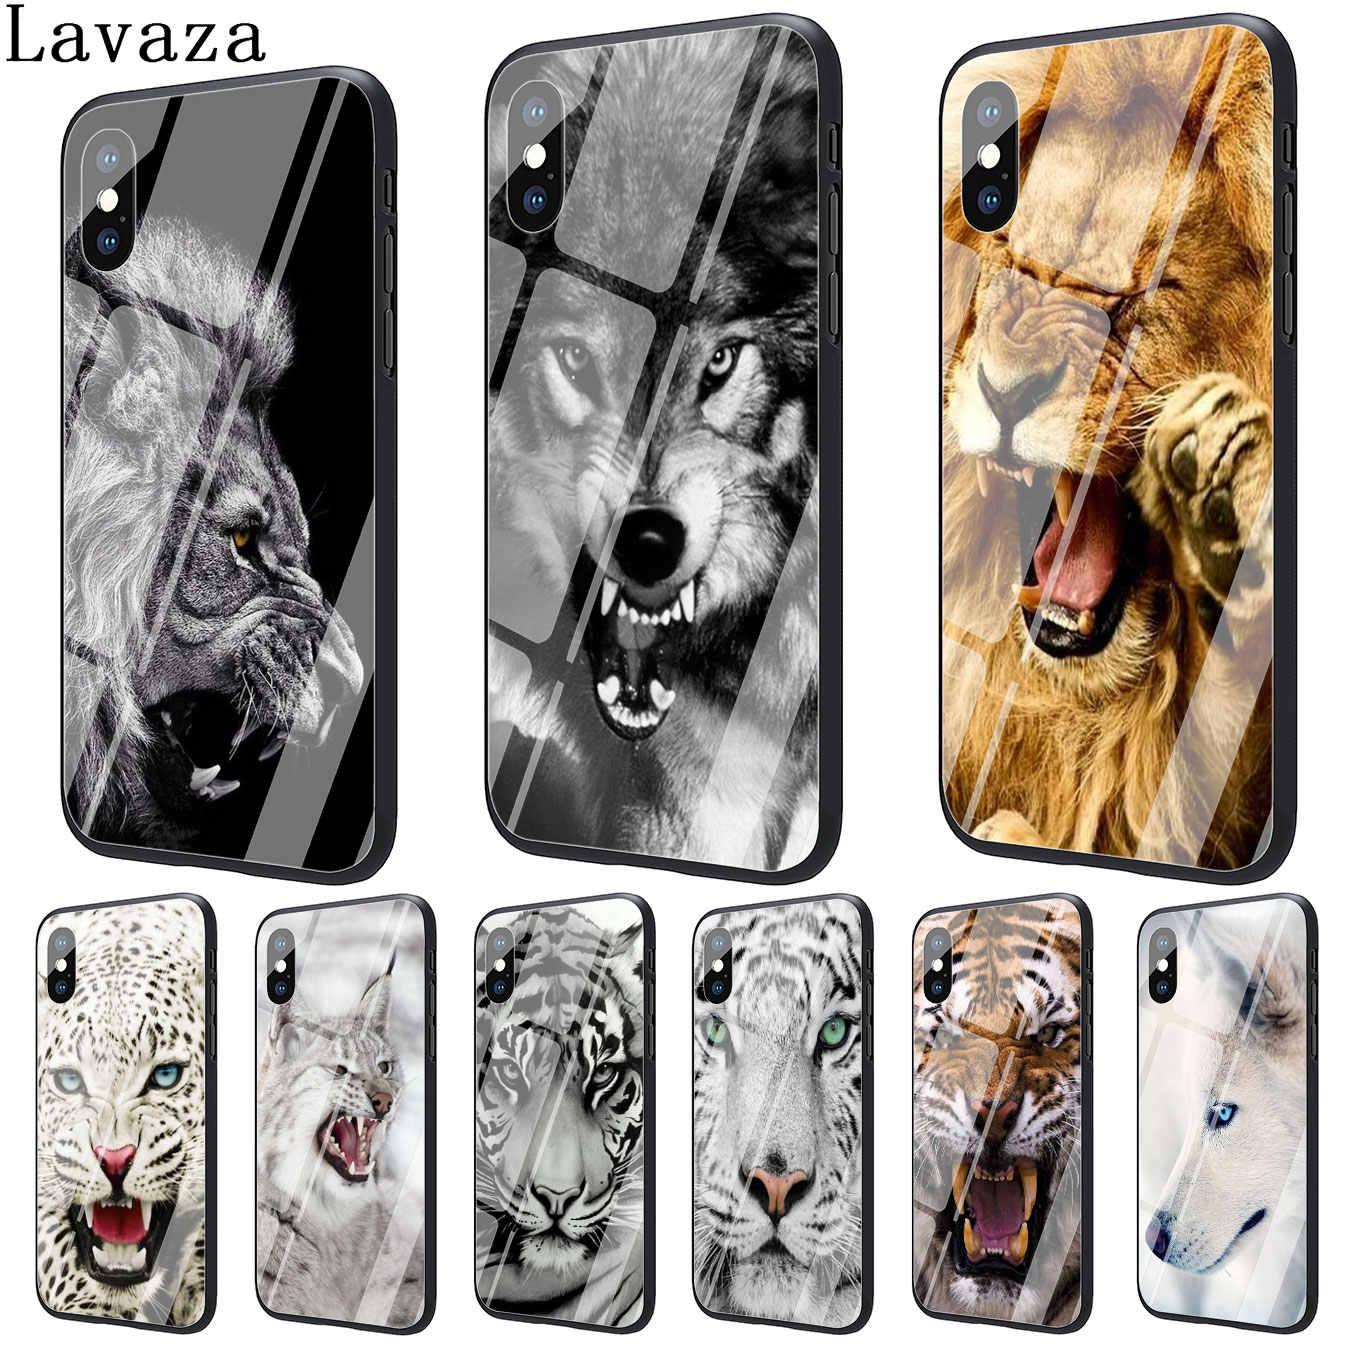 123f0d896c Lavaza Classic Cool lion tiger Wolf Print Tempered Glass Phone Cover Case  for Apple iPhone XR